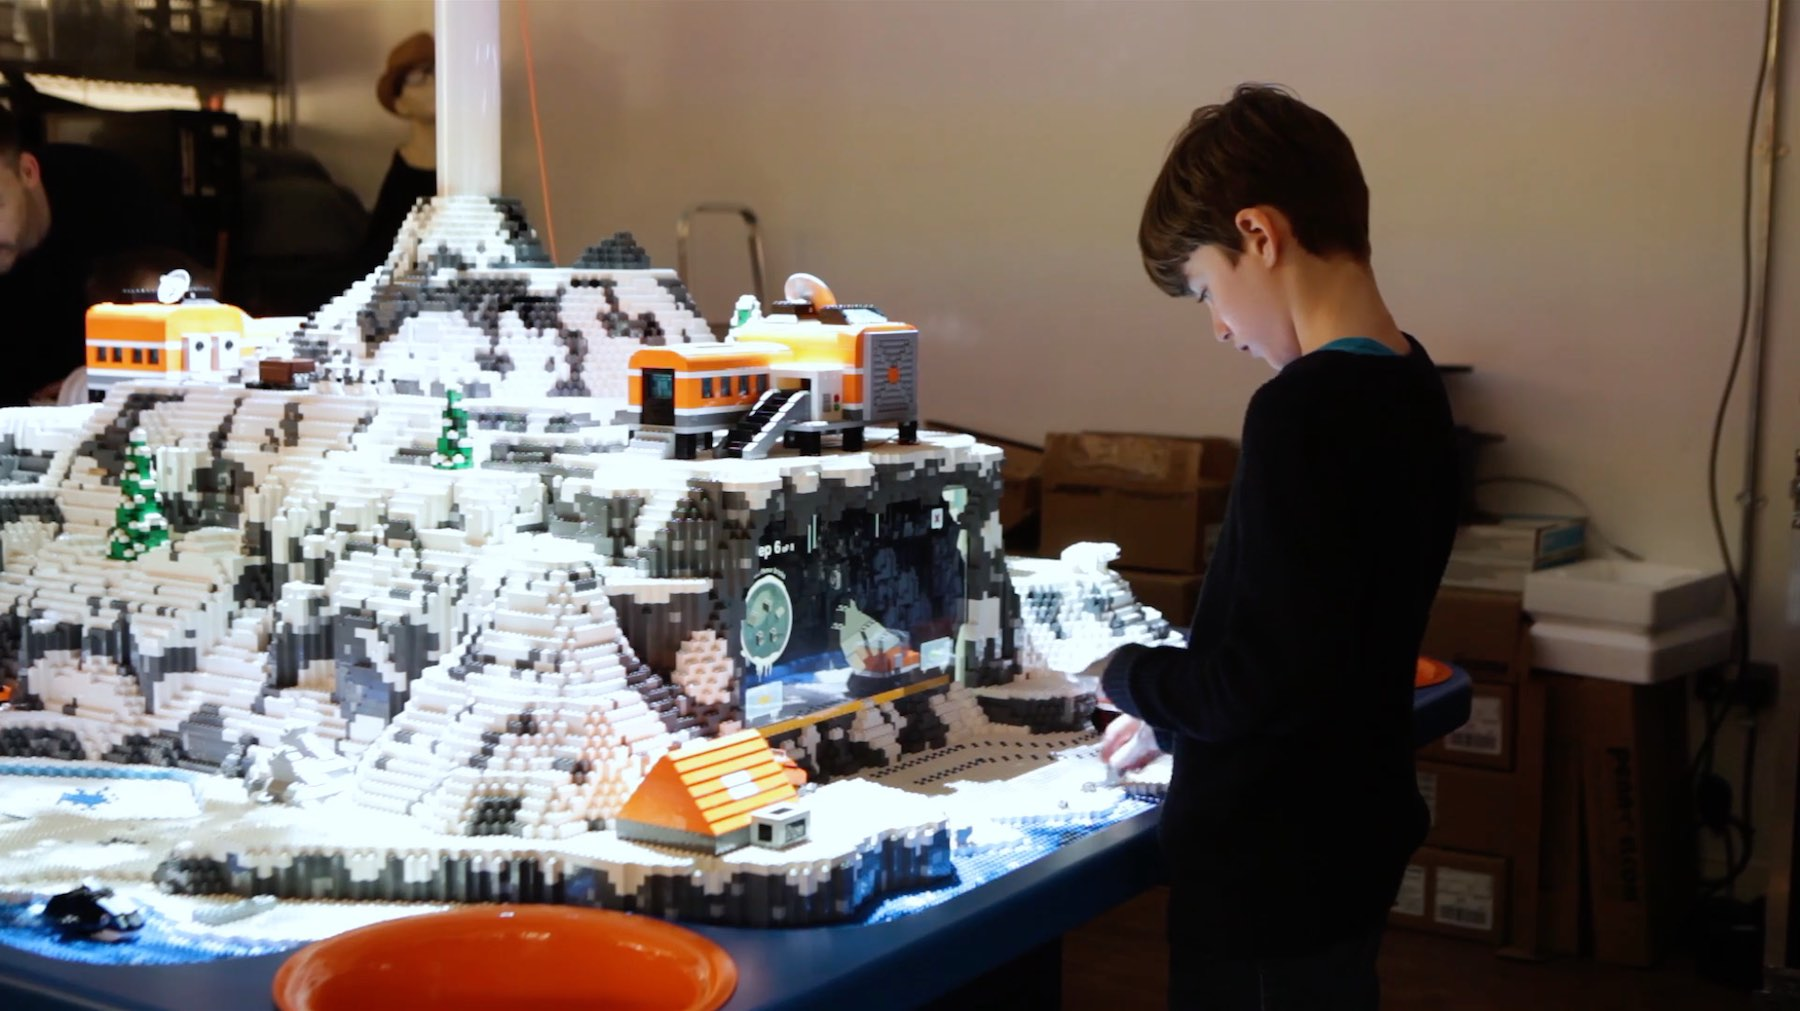 LEGO-INTERACTIVE-PLAYTABLE-ARTIC-LUCID